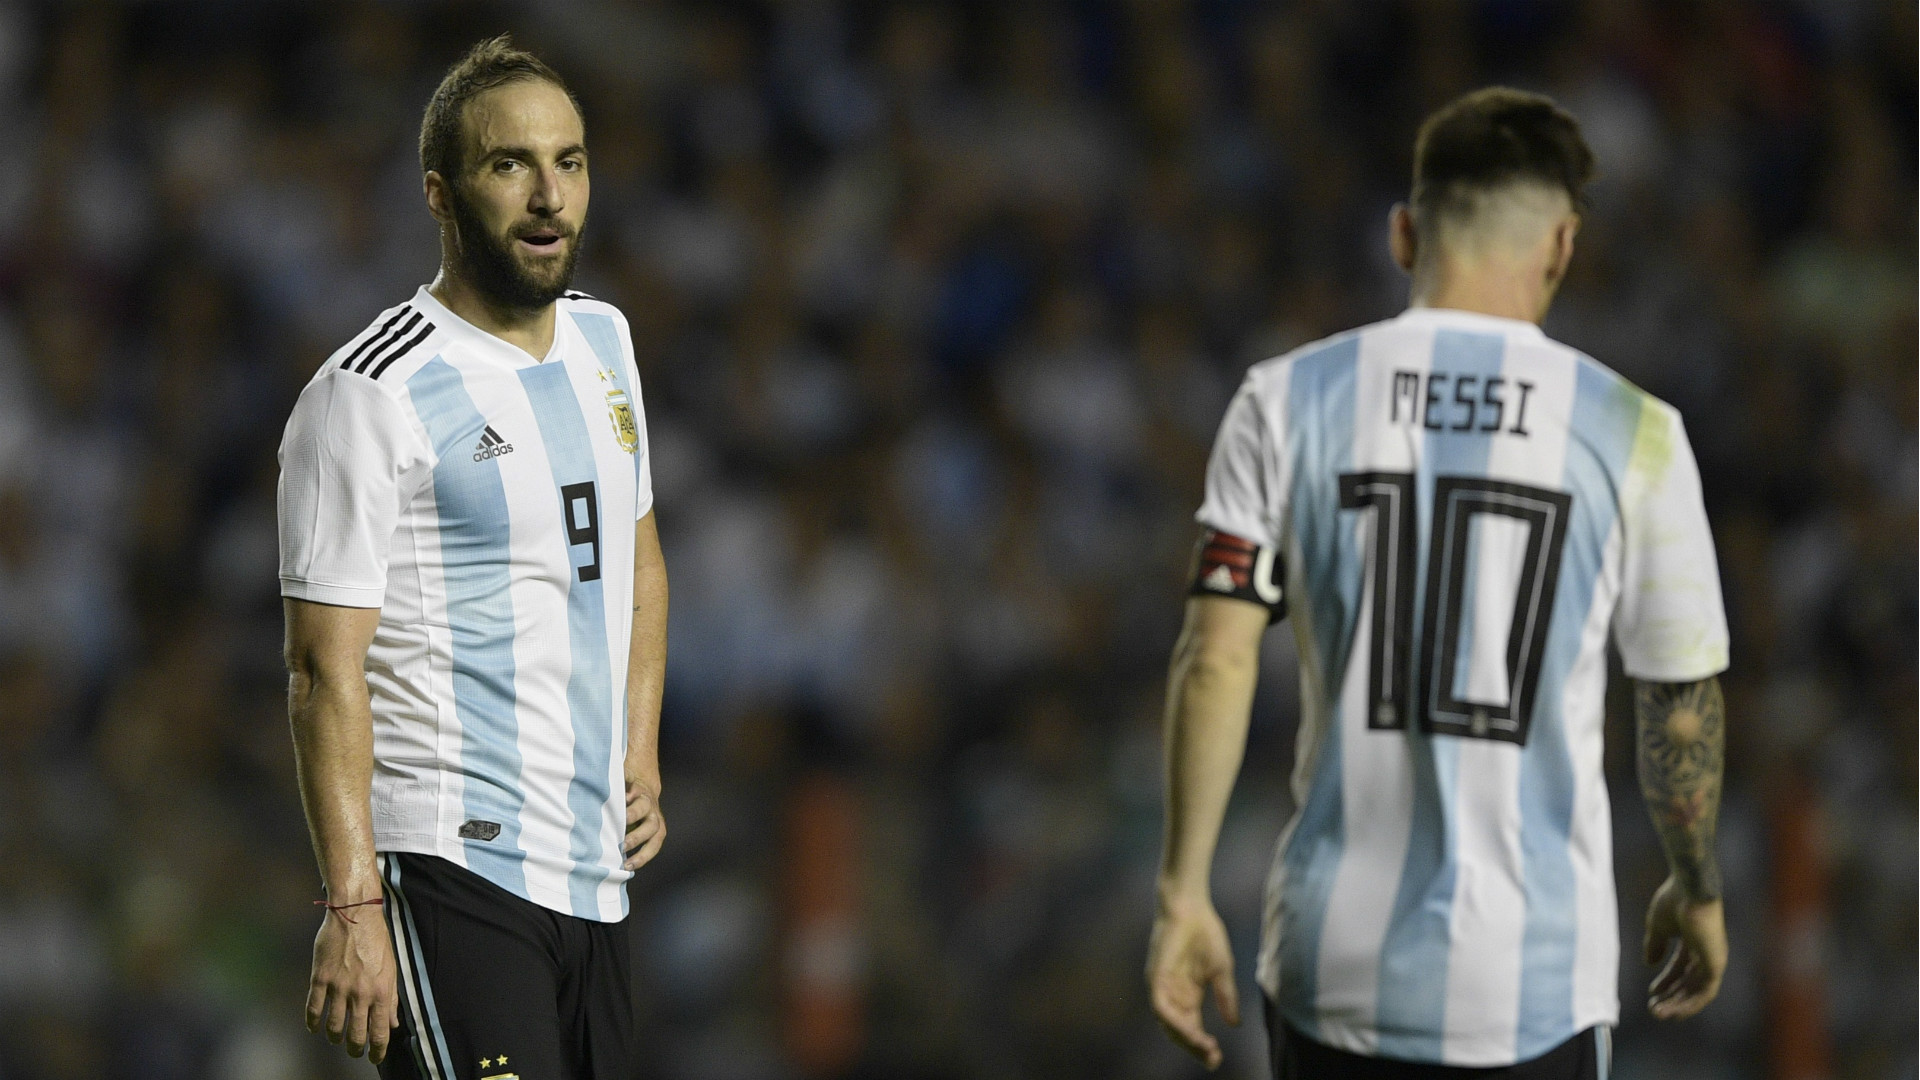 Chelsea's Gonzalo Higuain retires from global football with Argentina